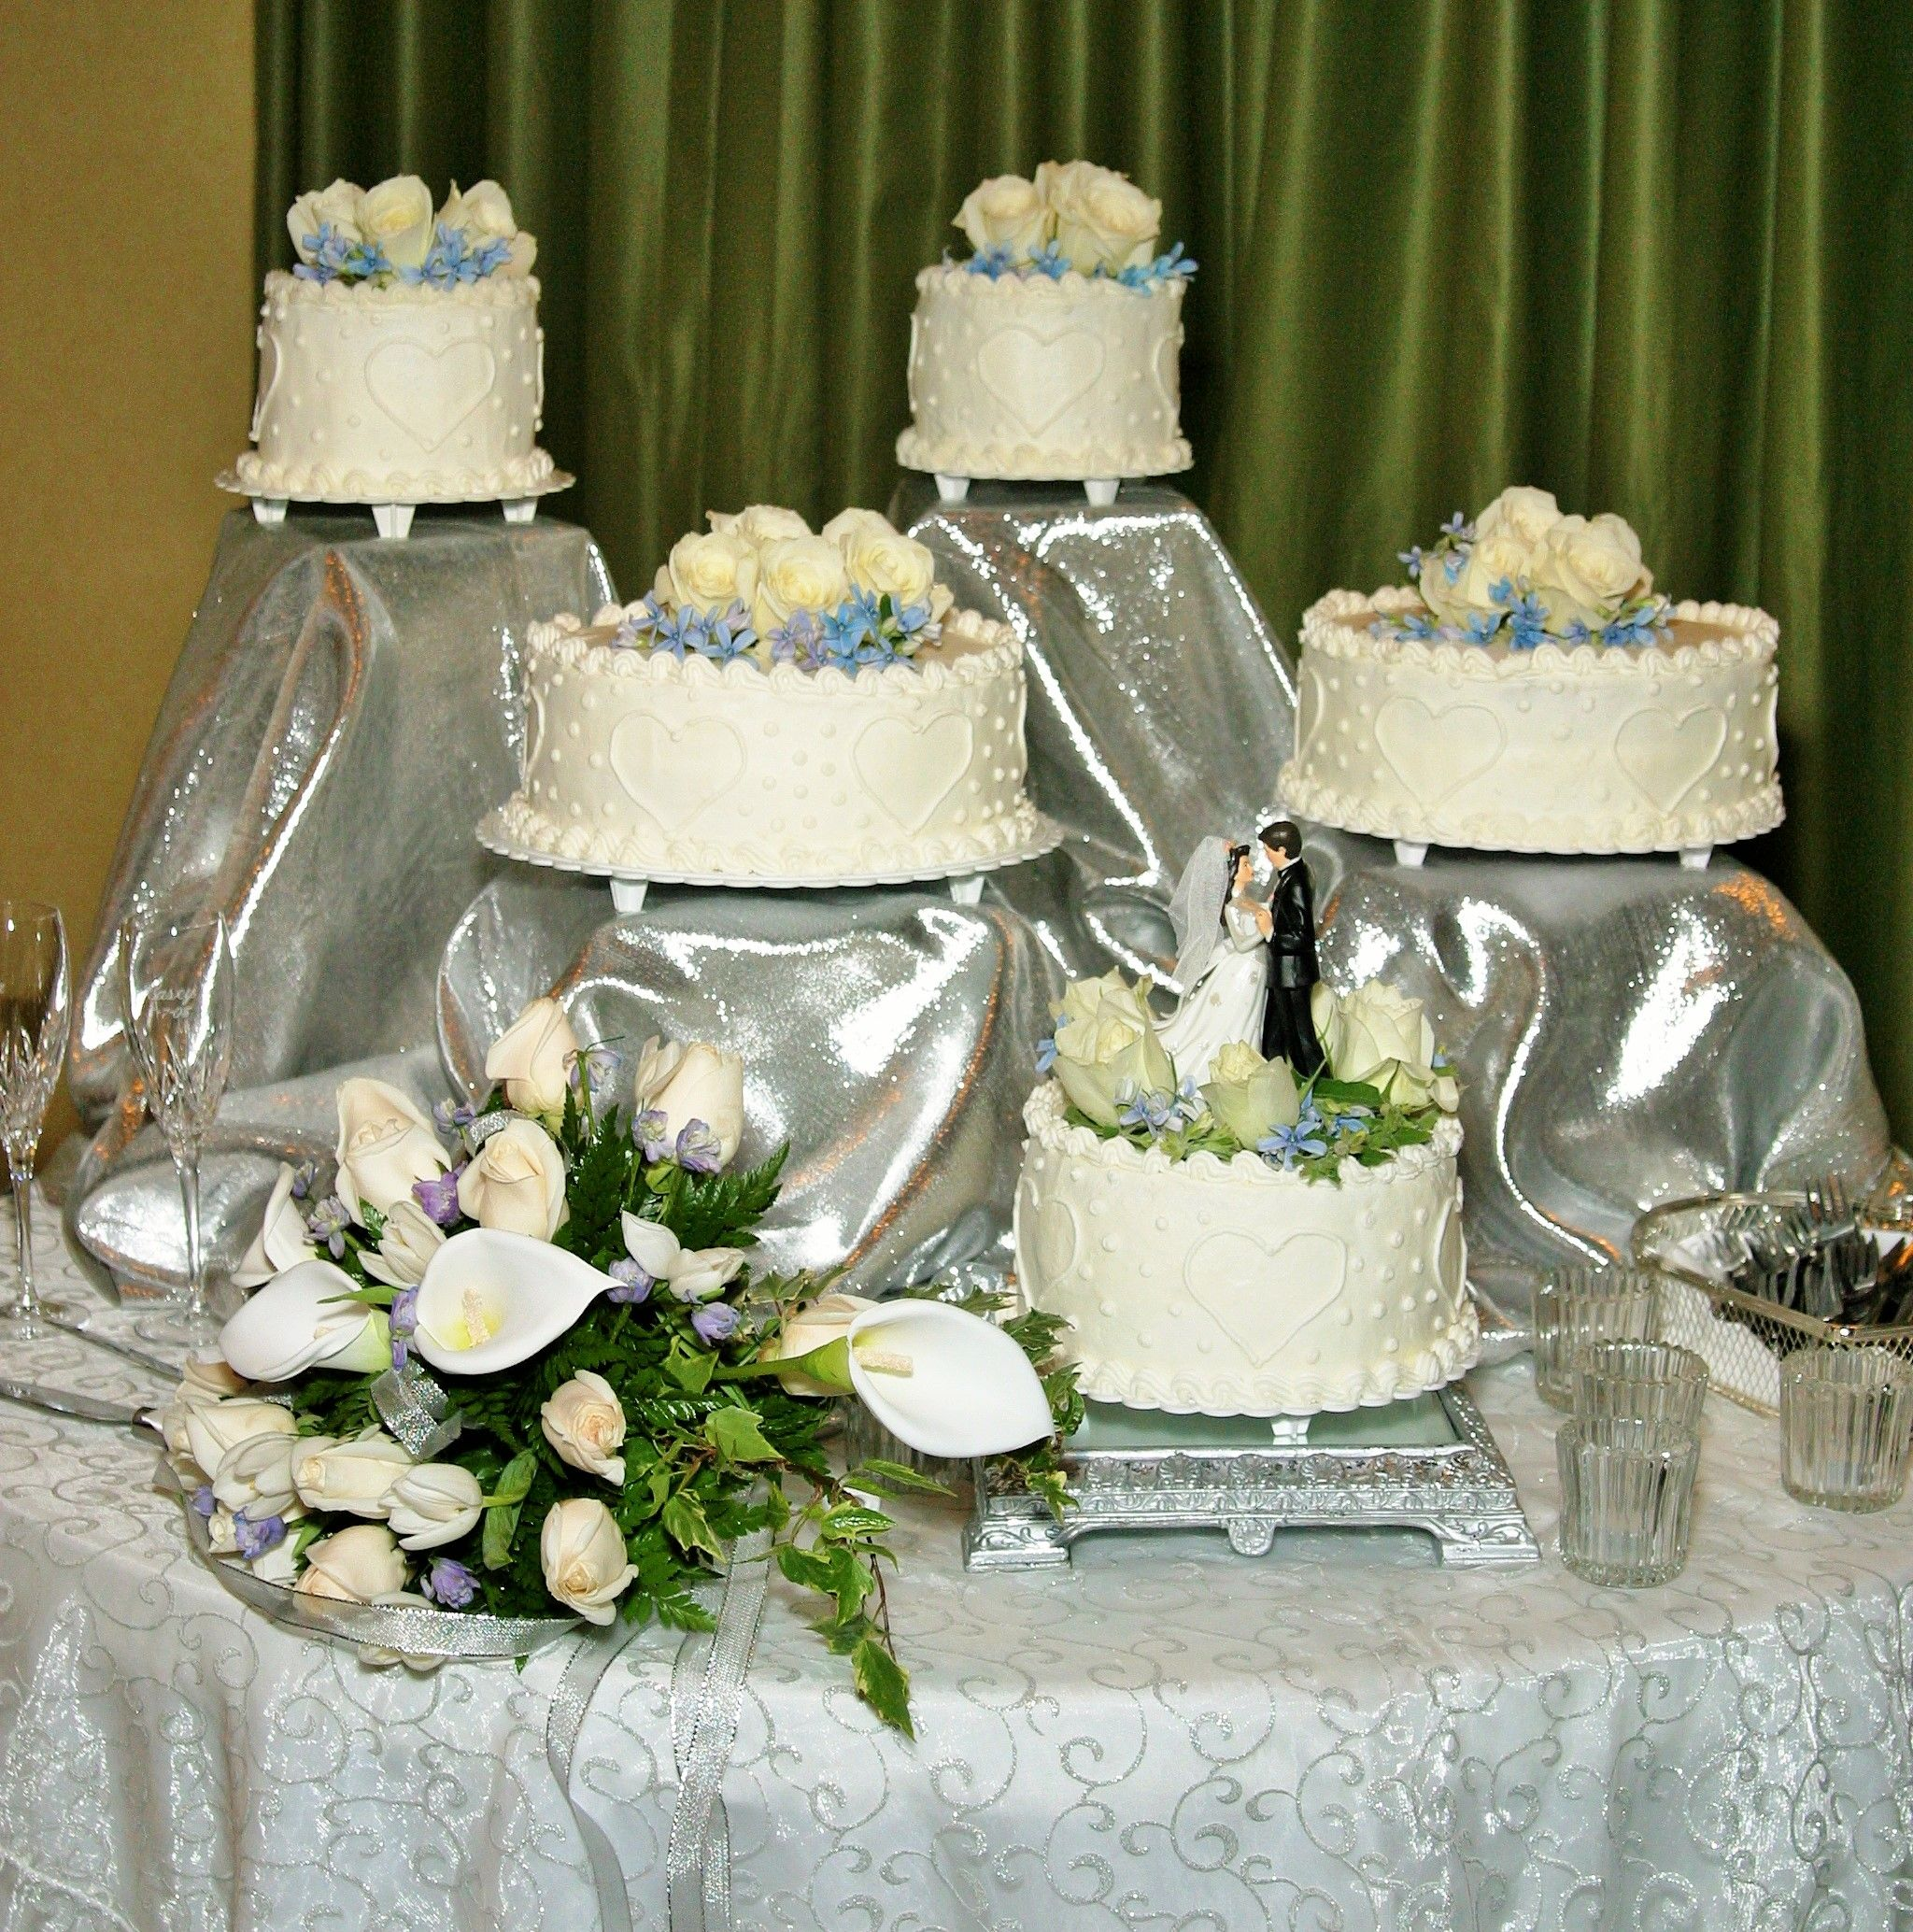 5 separate tier round wedding cake with heart design and